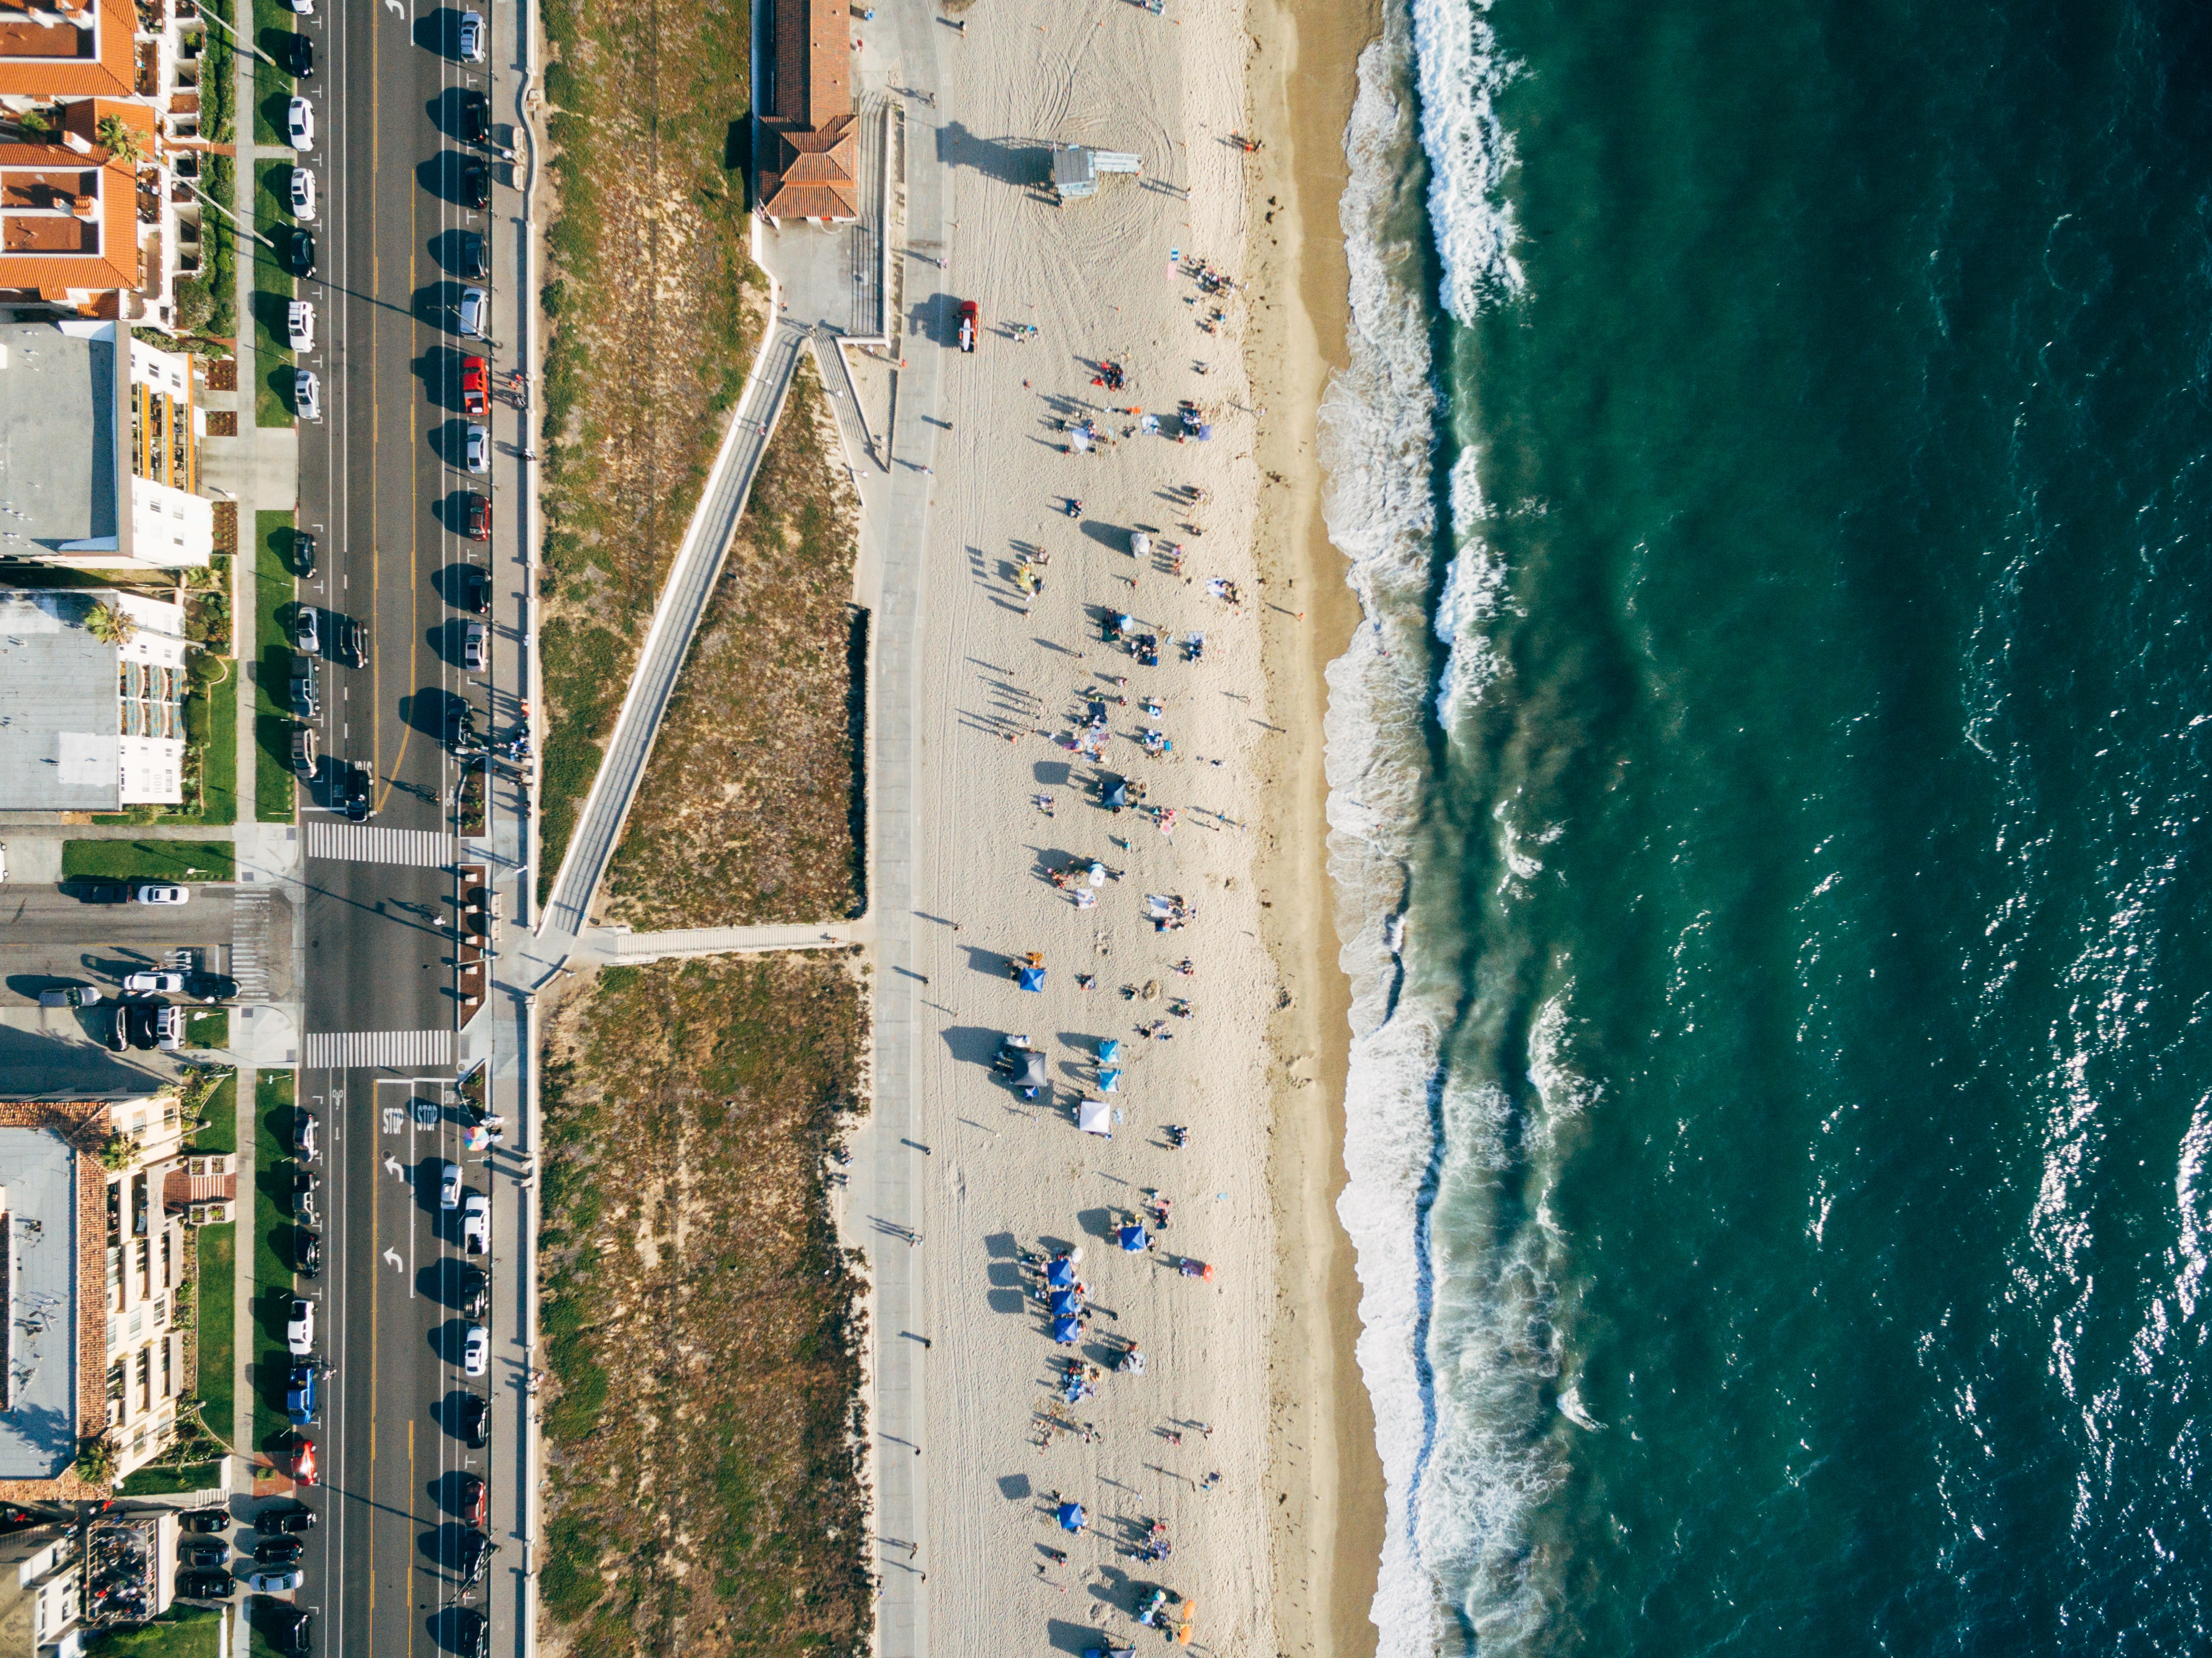 A drone shot of a sandy beach stretching along the warm sea